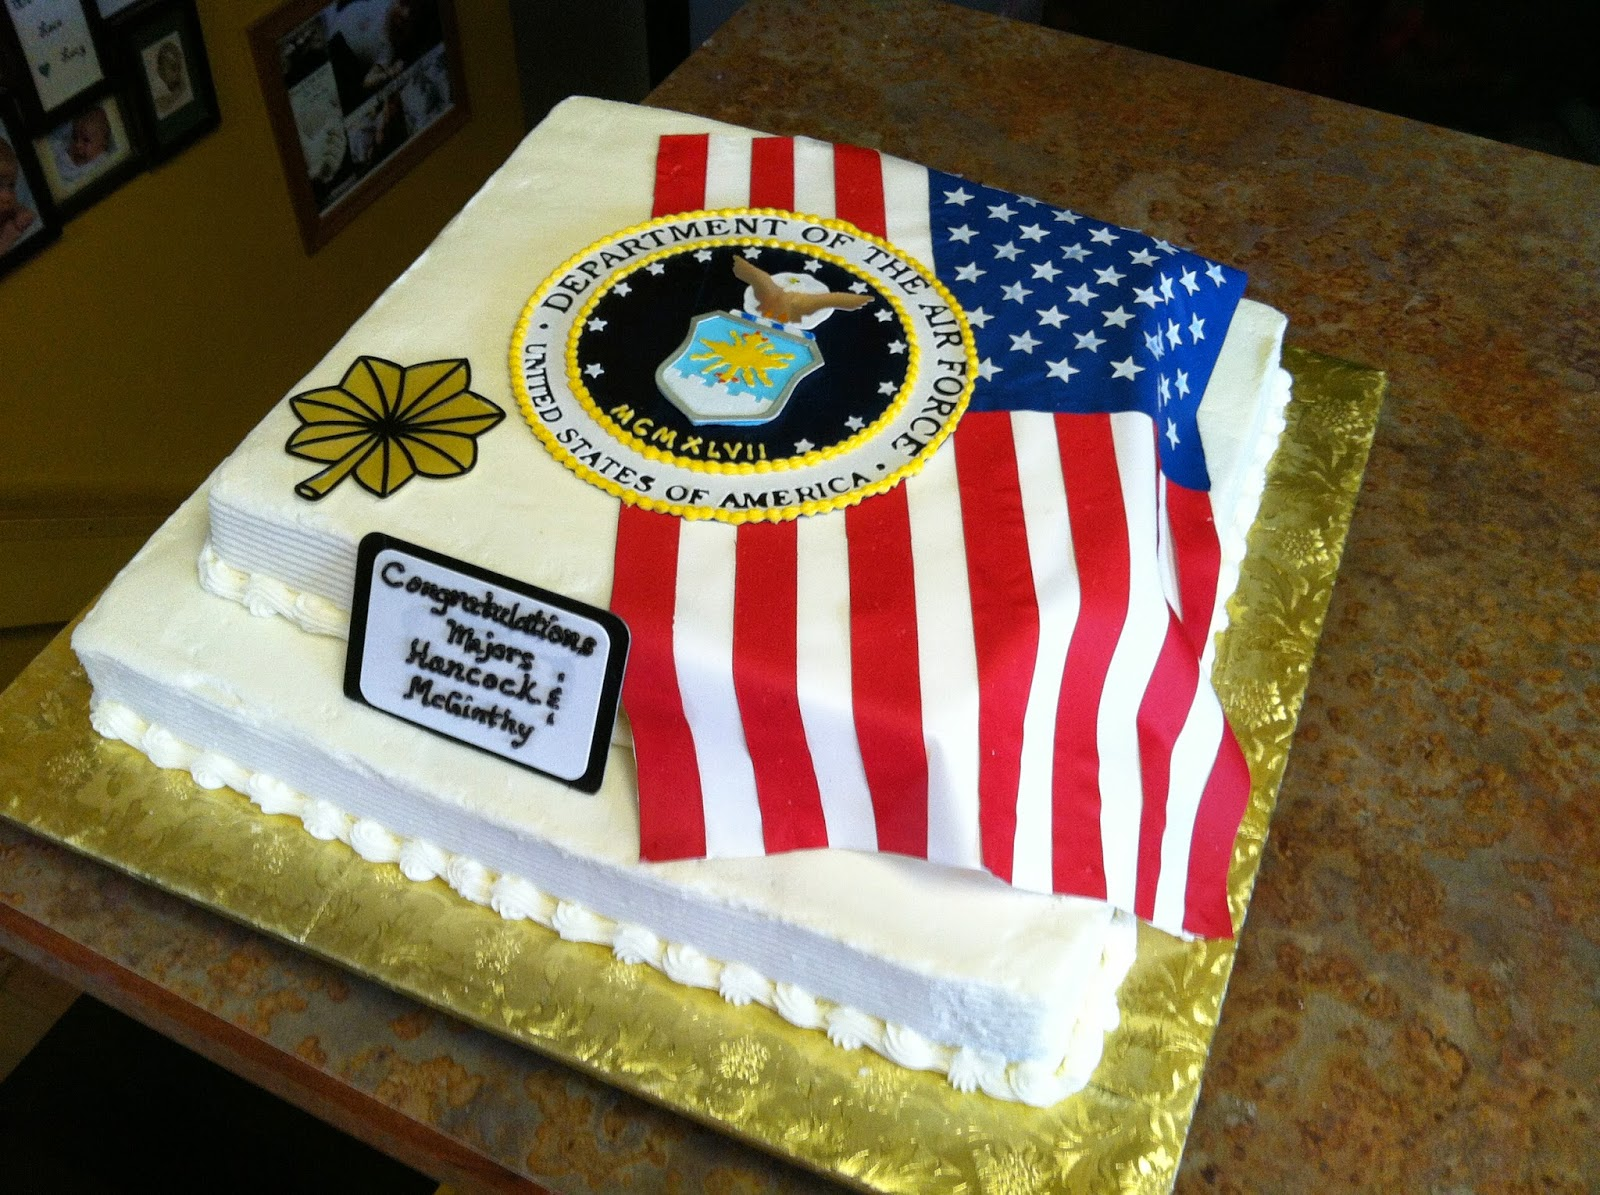 Cake concepts by cathy off we go into the wild blue yonder for Air force cakes decoration